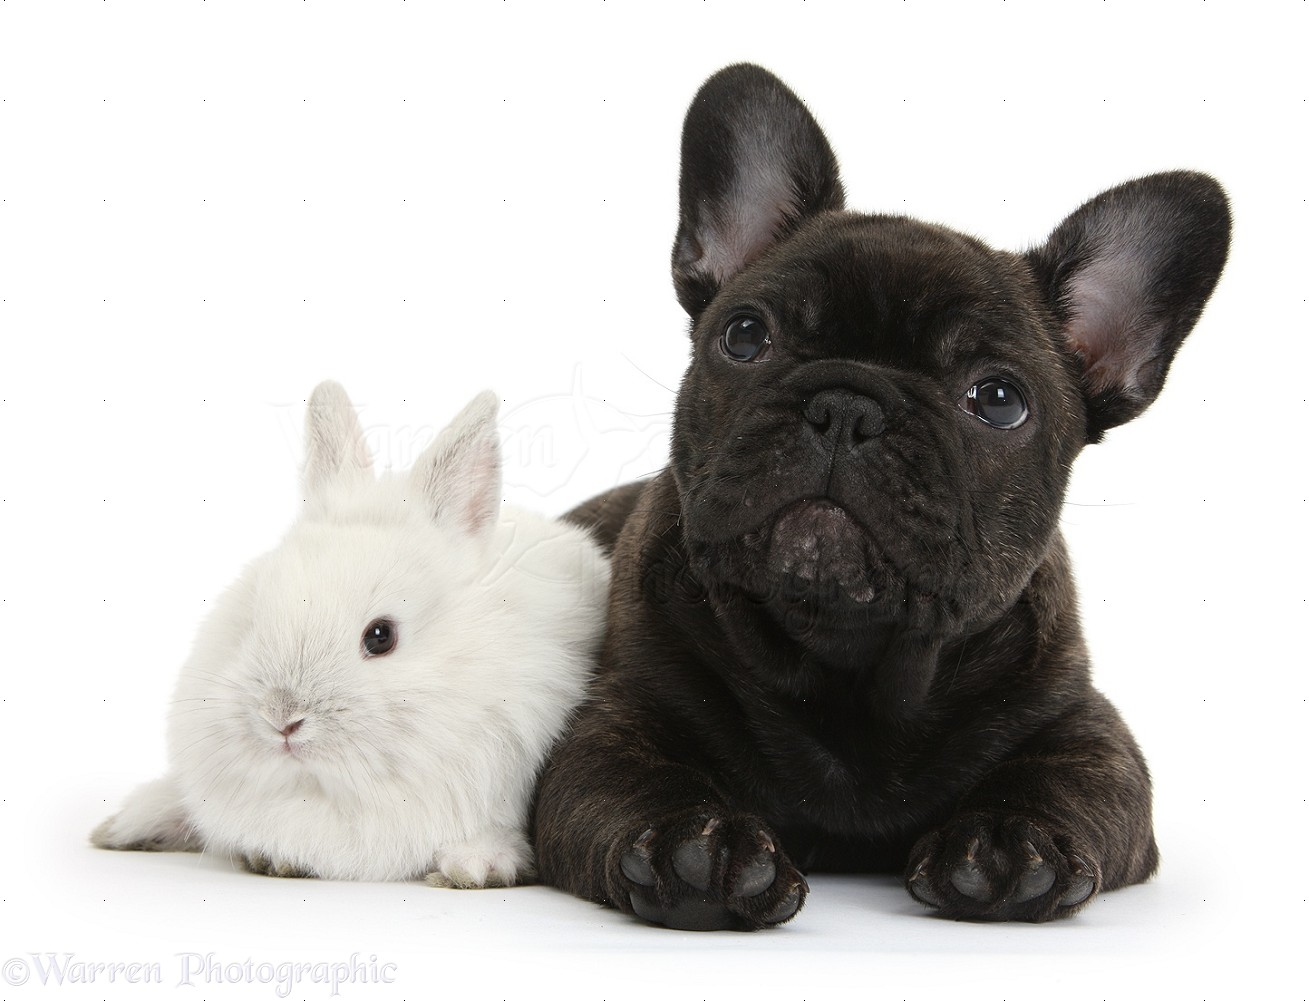 Pets French Bulldog Pup And White Bunny Photo Wp36644